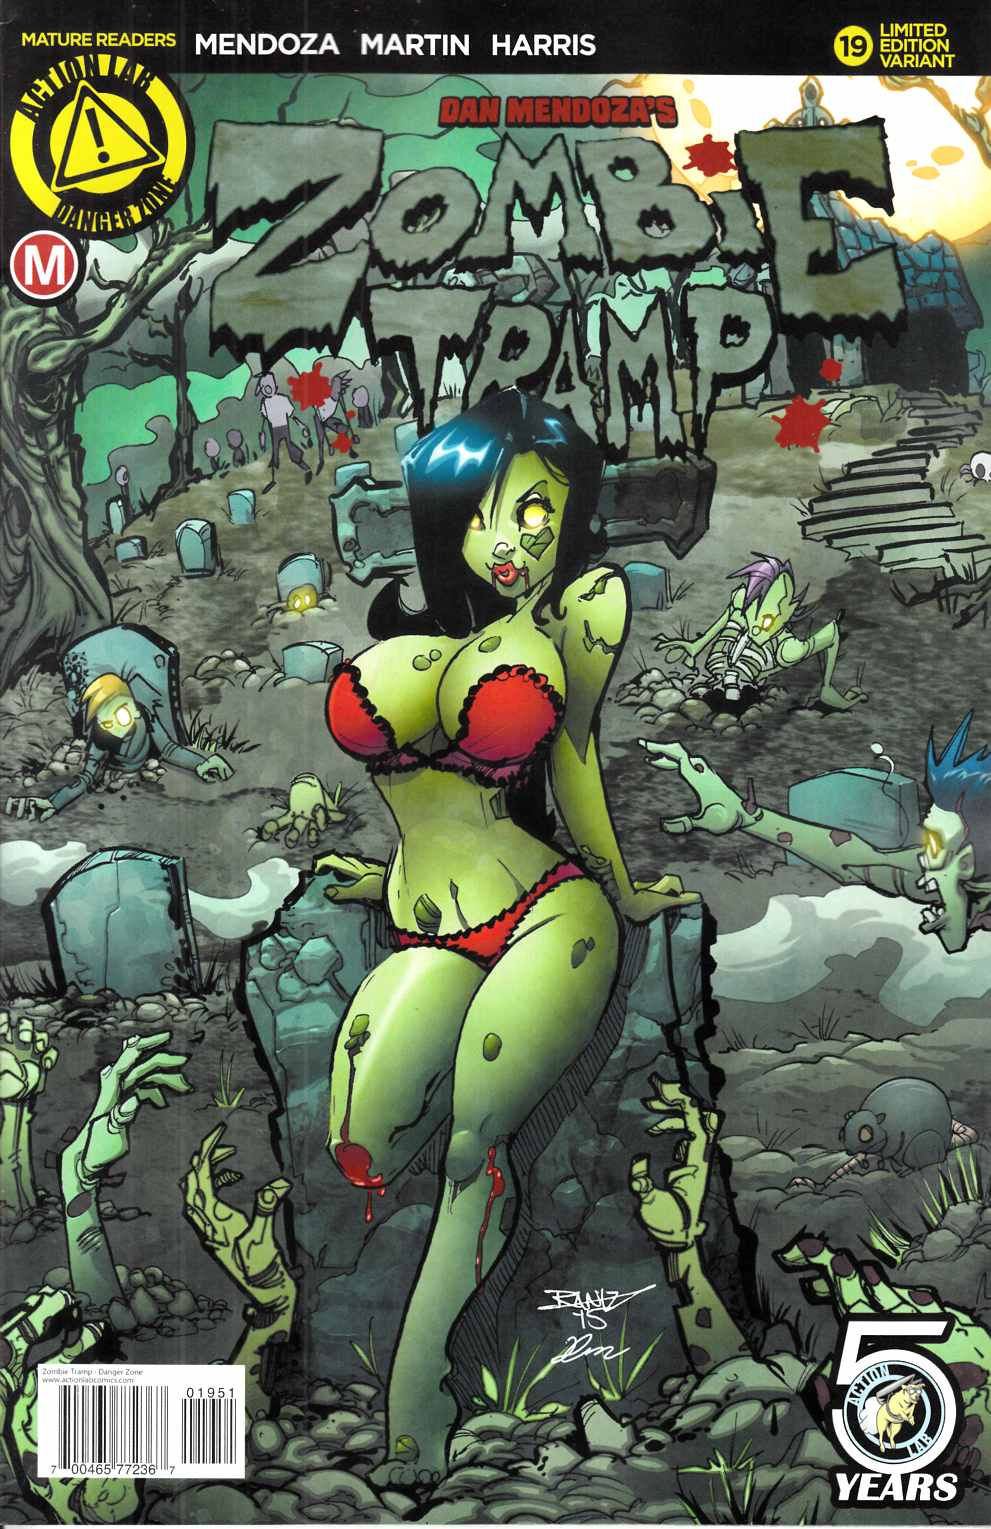 Zombie Tramp Ongoing #19 Kintz Variant Cover [Danger Zone Comic]